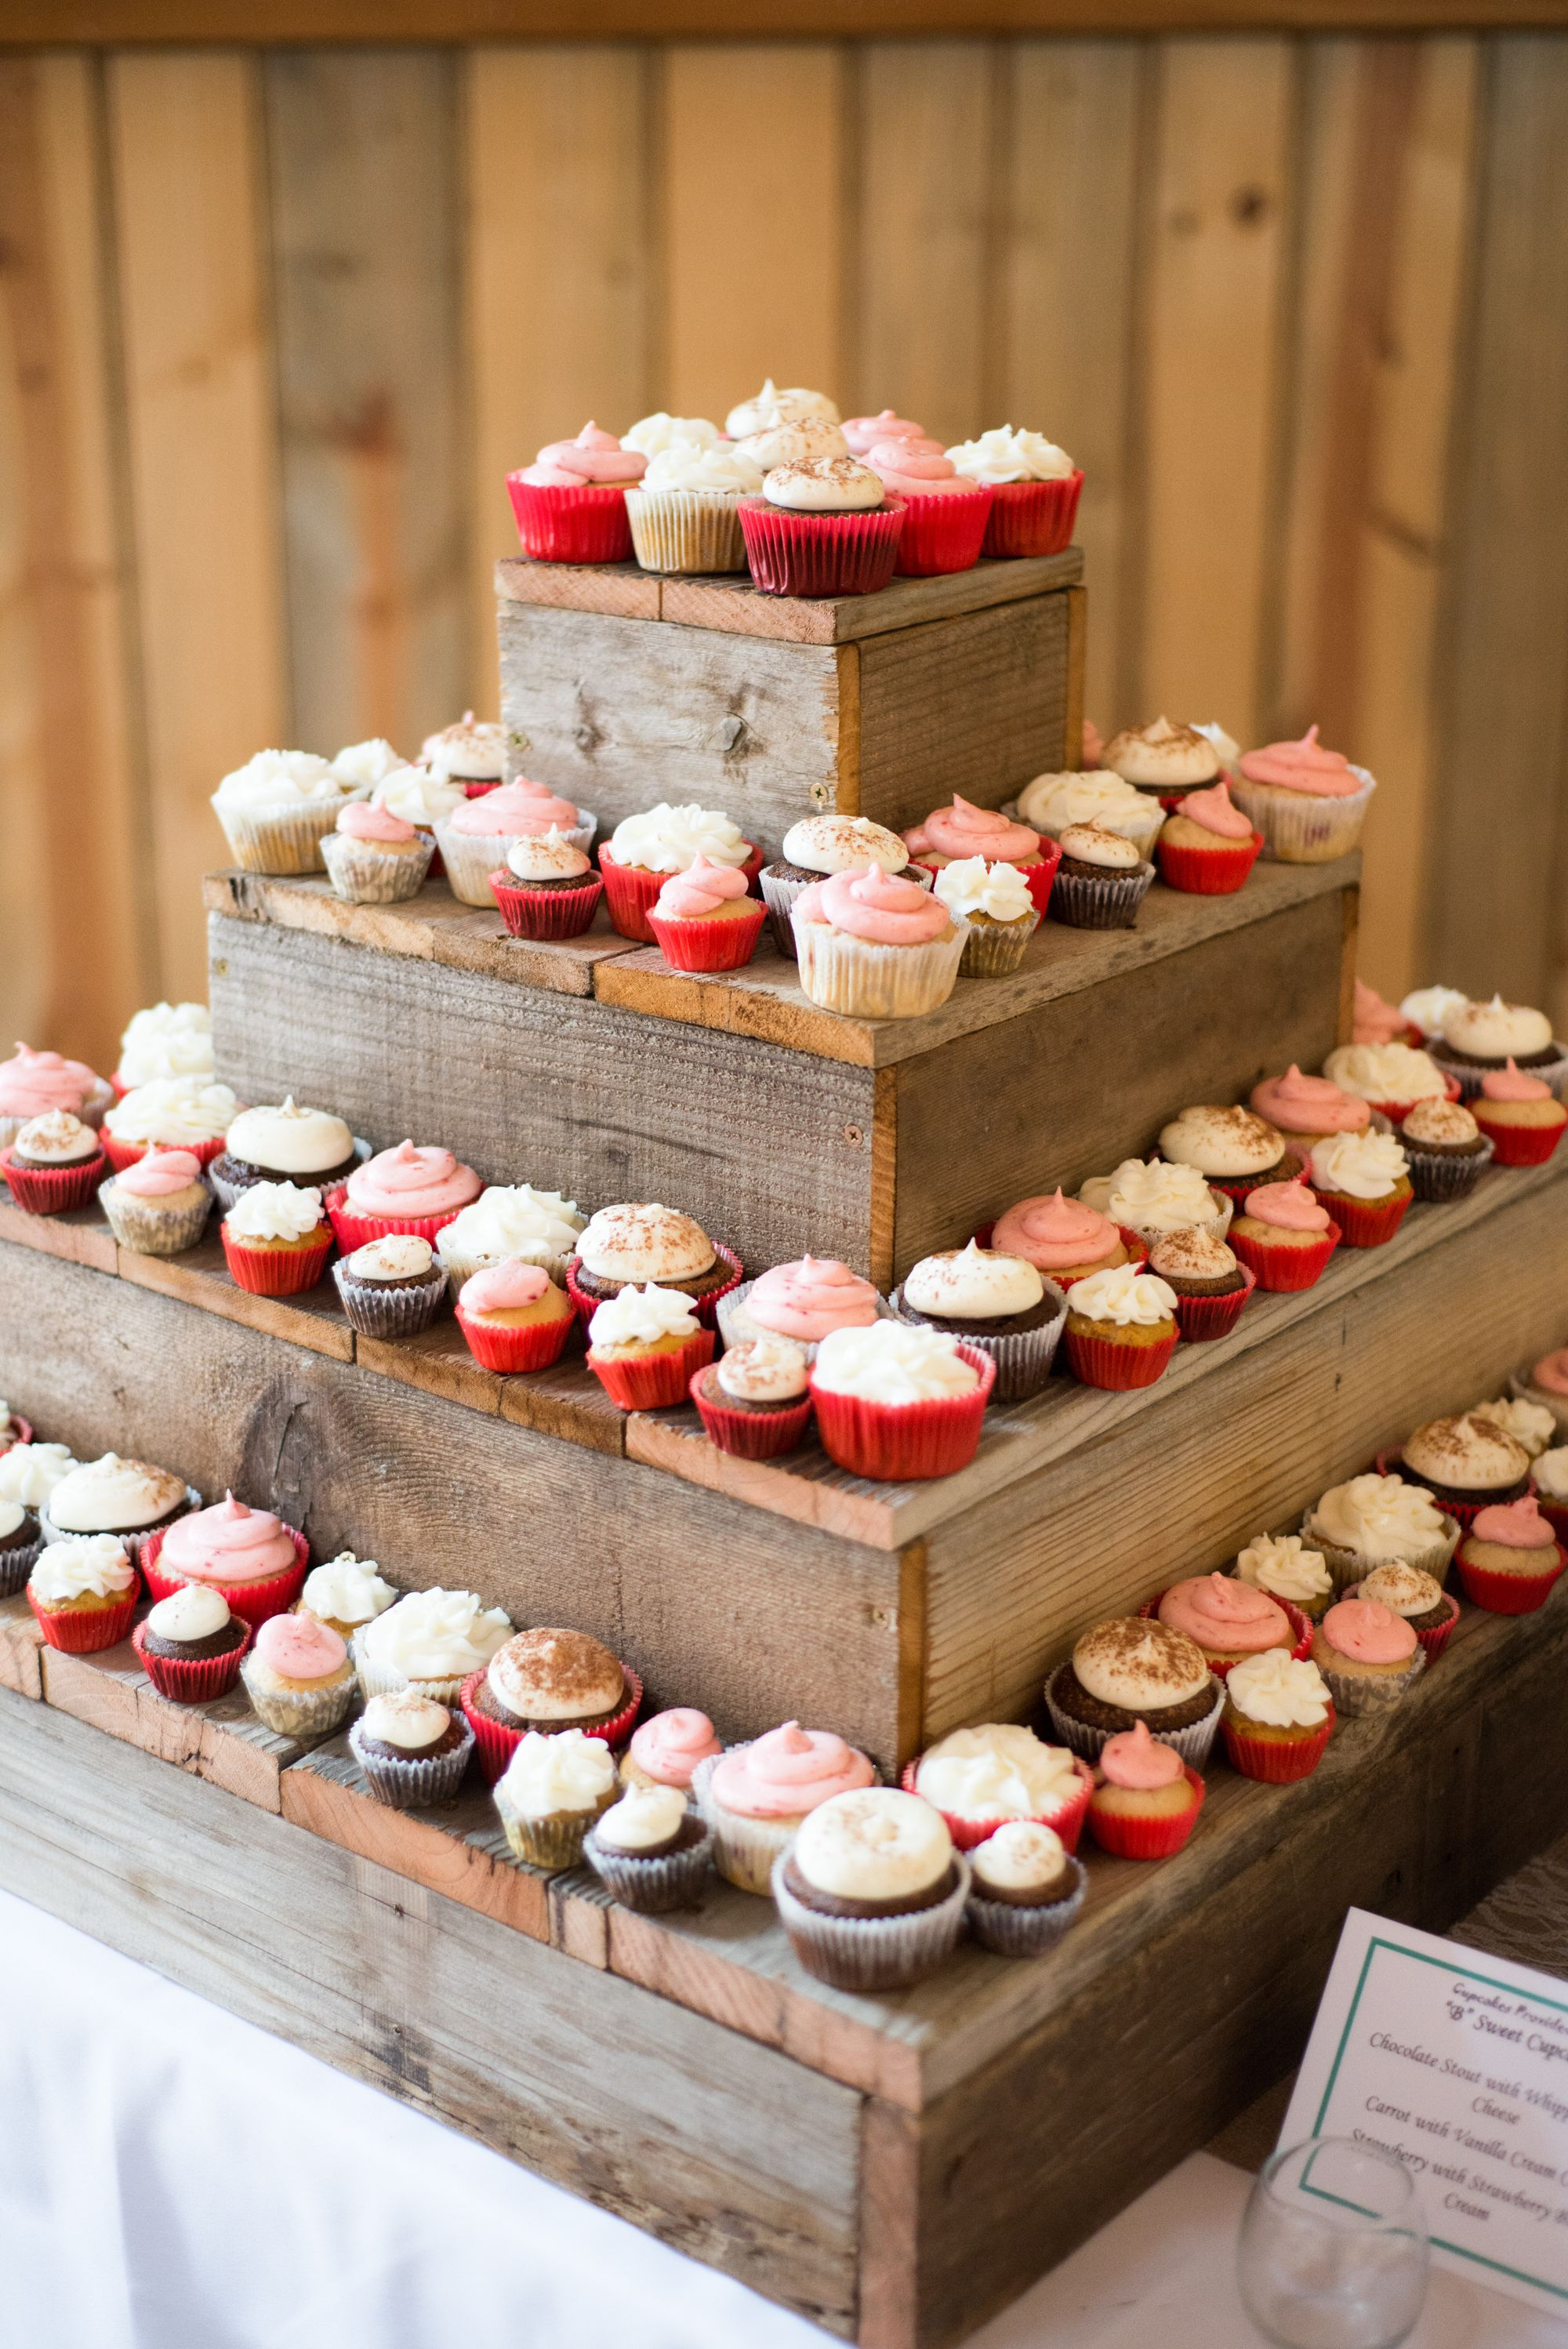 Diy Backdrop Stand For Dessert Table Diy Barn Wood Cupcake Stand Dessert Table Cakes And Such